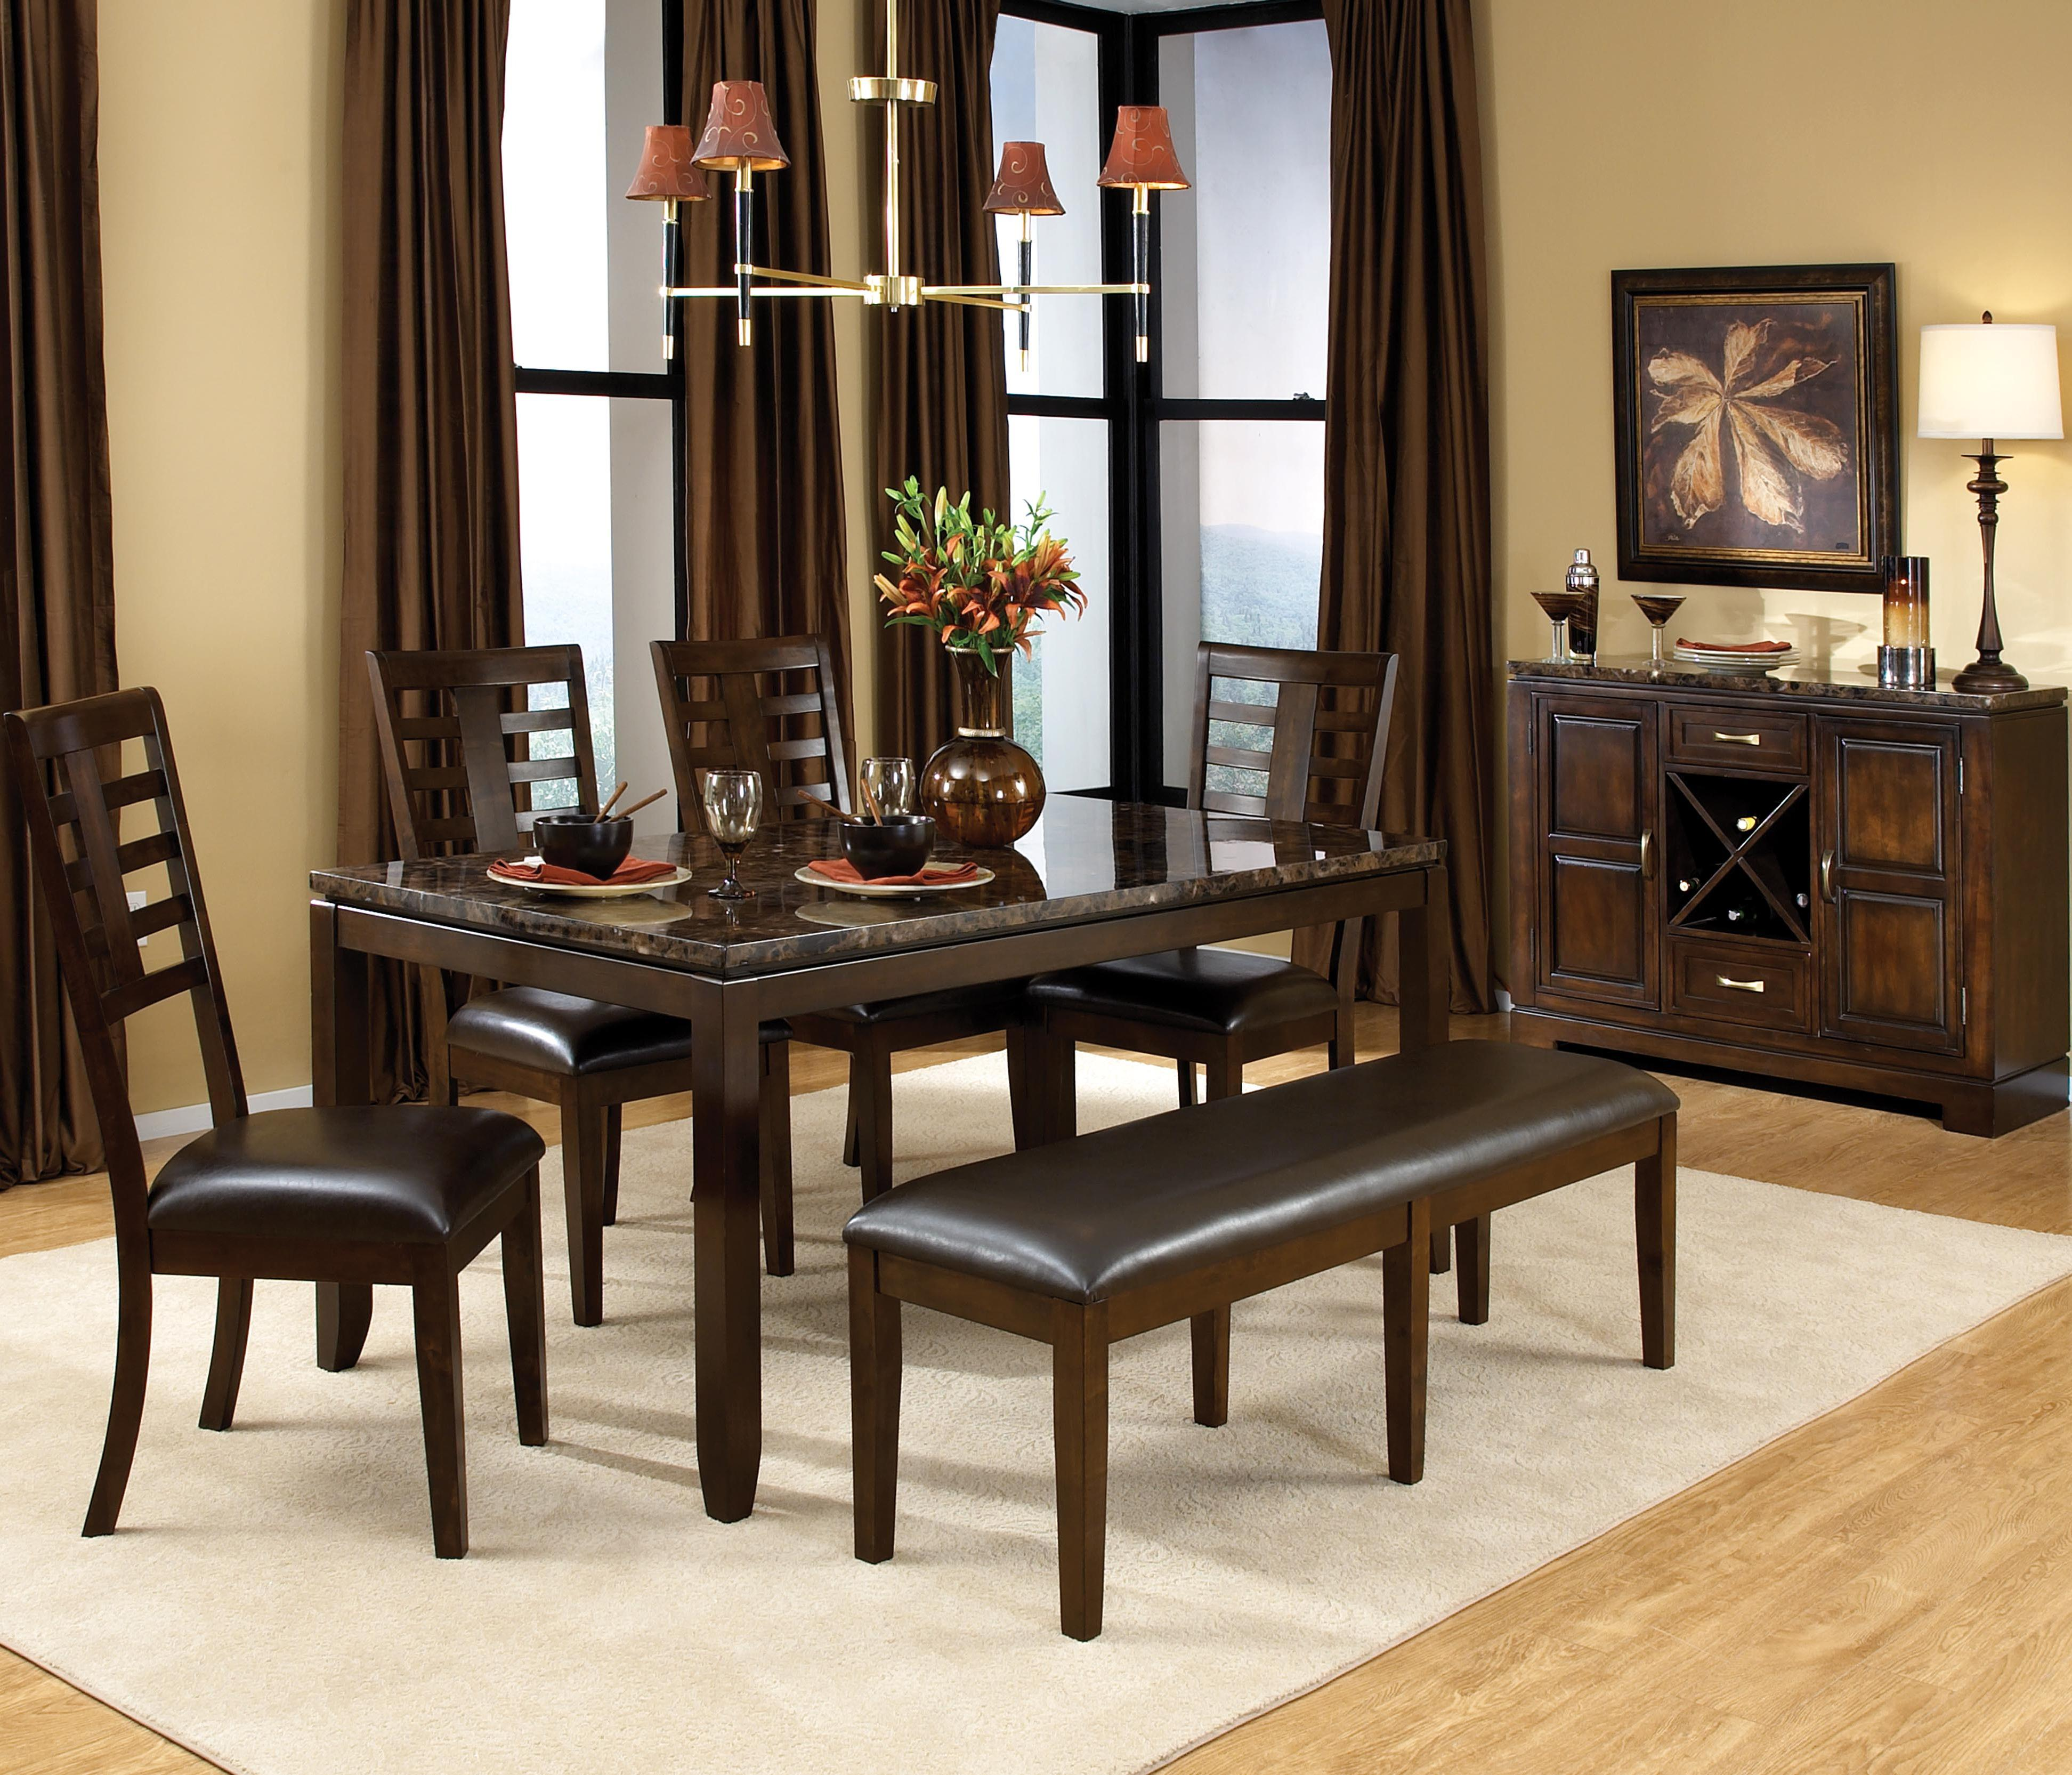 Brown dining room decorating ideas - 7 Piece Dining Set With Faux Marble Top Bella By Standard Furniture Wilcox Furniture Dining 7 Or More Piece Set Corpus Christi Kingsville